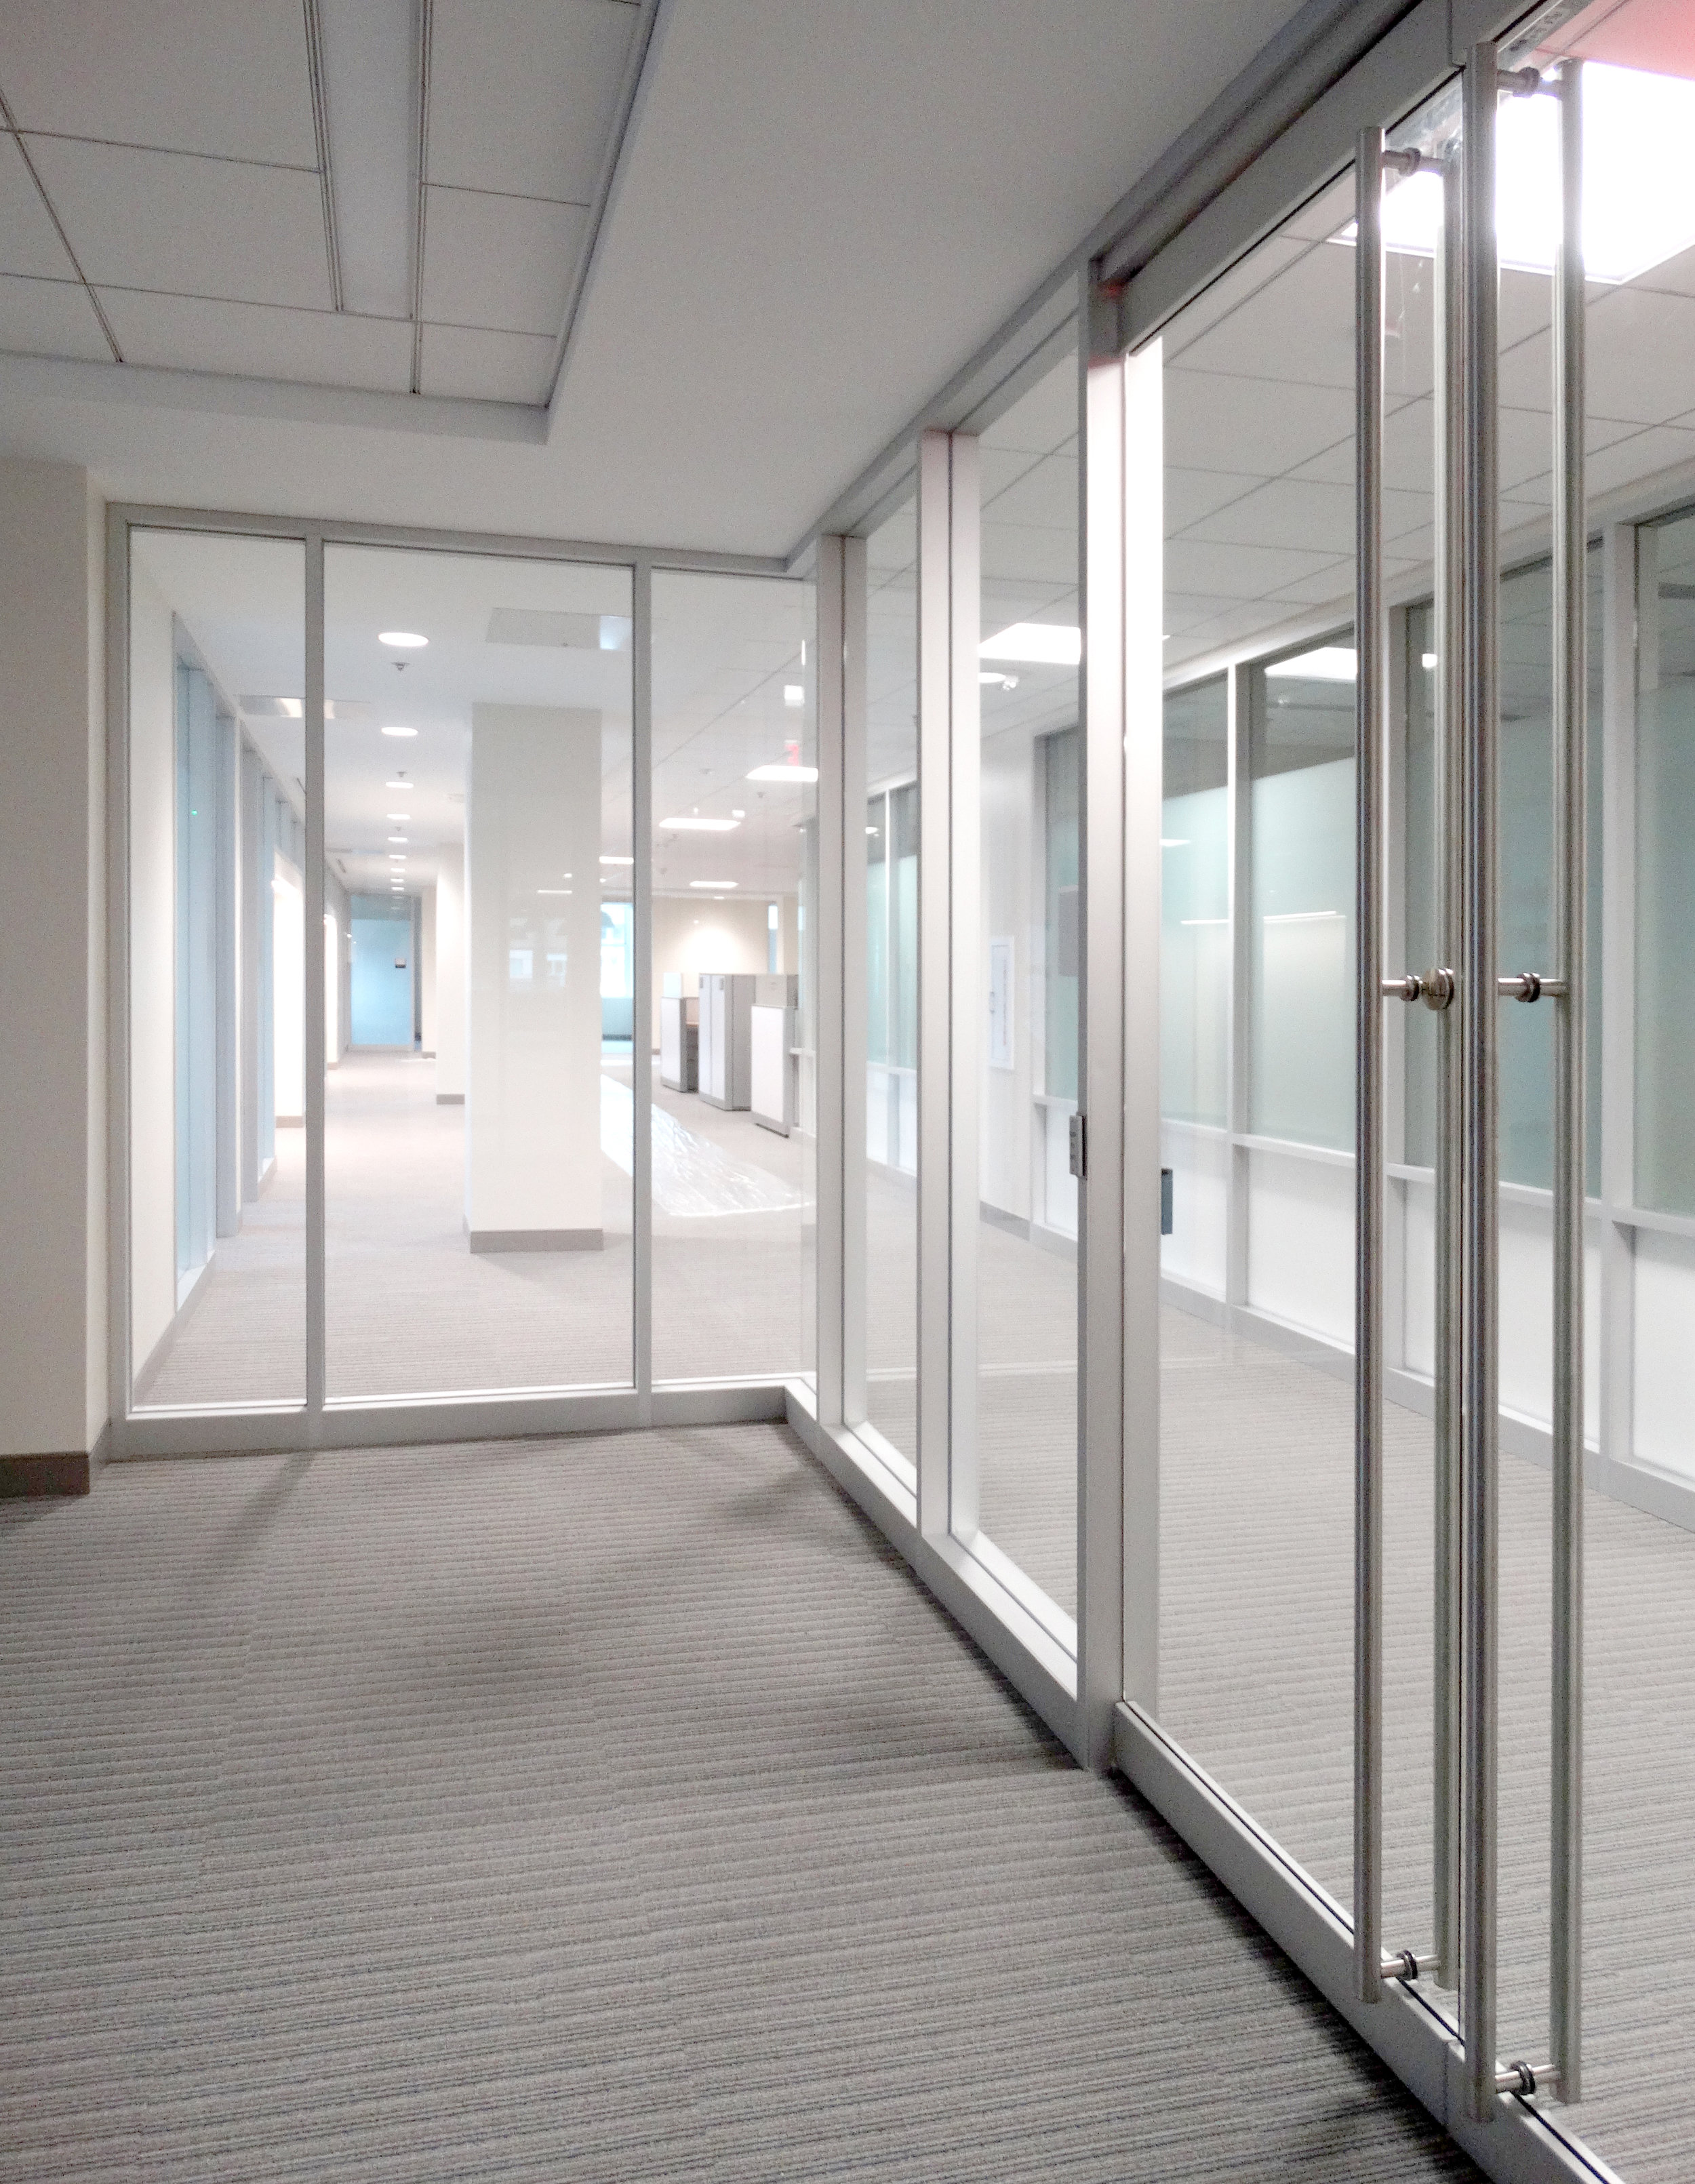 Encase Aluminum Framed Vertical Mullion Frameless Swing Doors - Spaceworks AI.jpg